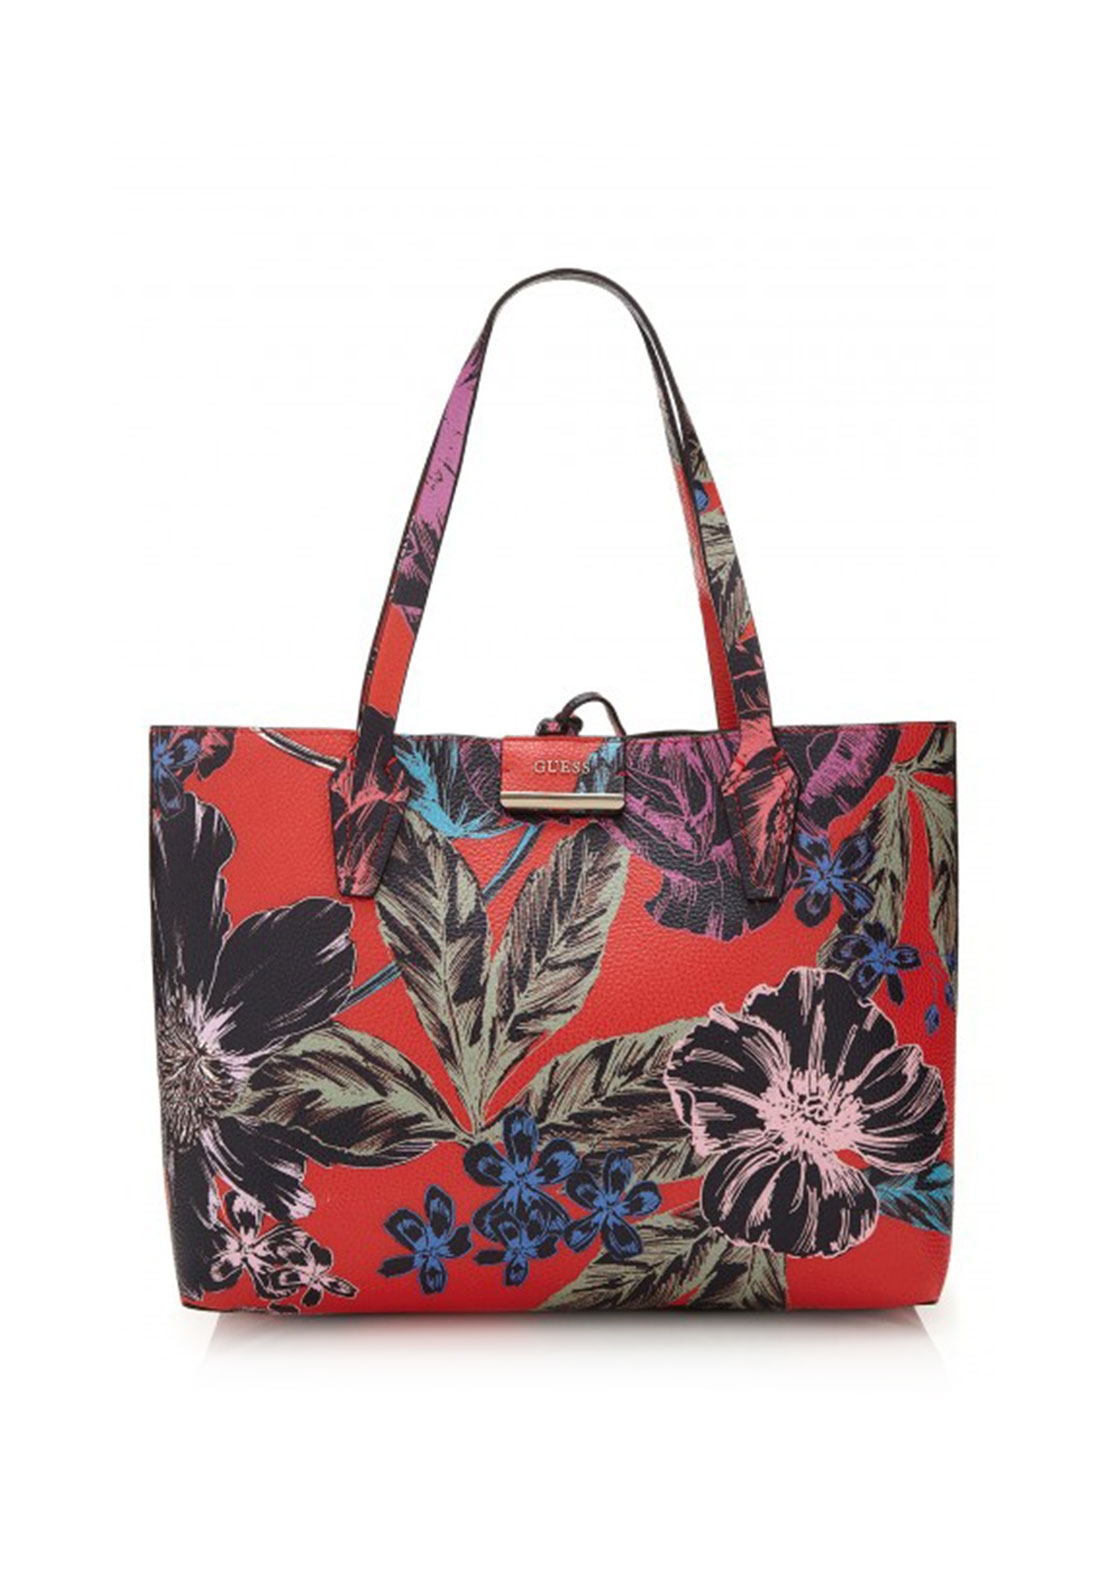 Guess Bobbi Reversible Tote Bag Pink Floral | McElhinneys